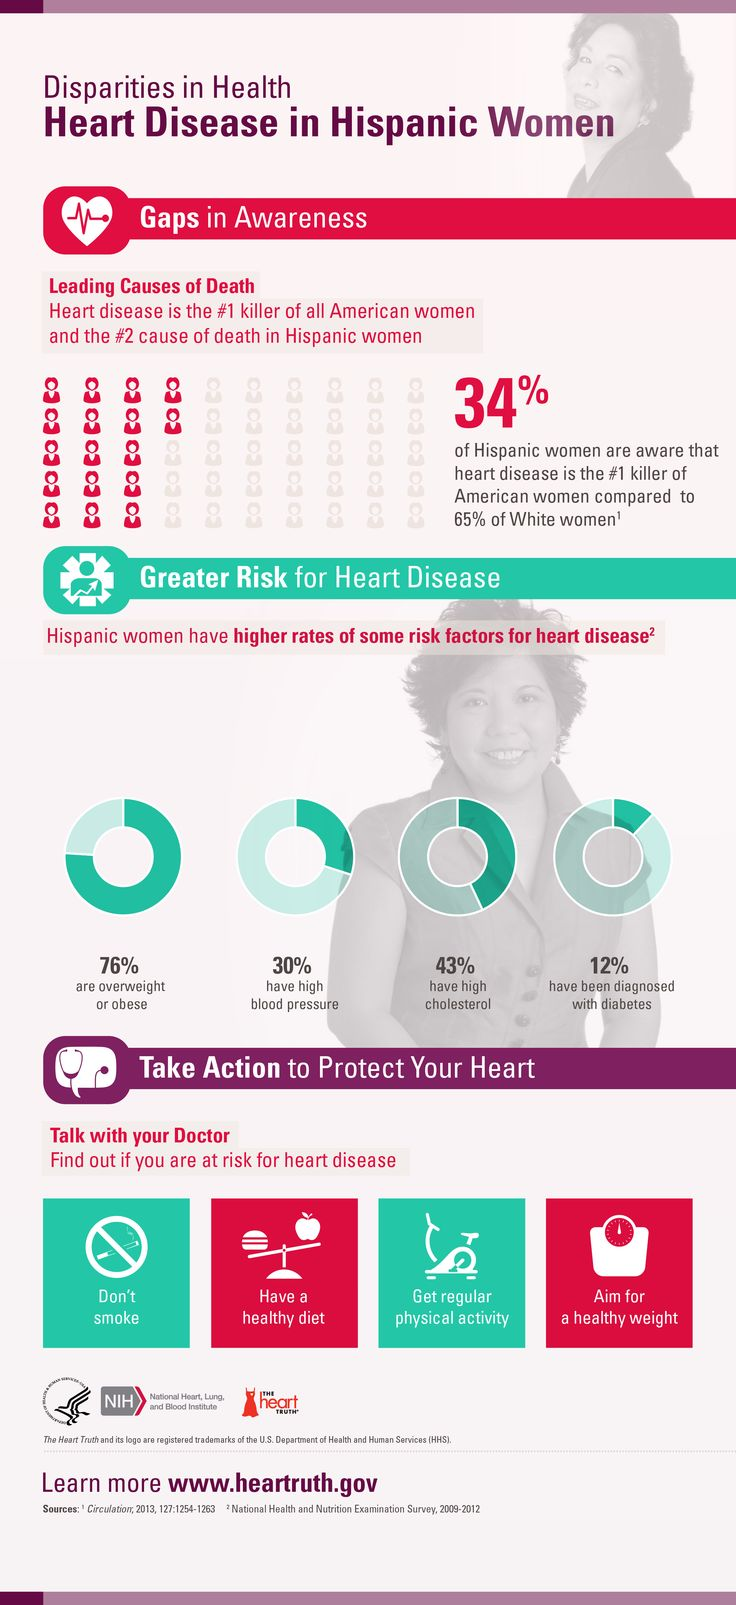 Did you know? Only 34% of Hispanic women are aware that heart disease is the #1 killer of American women. Learn more about #healthdisparities and #hearthealth. #infographic